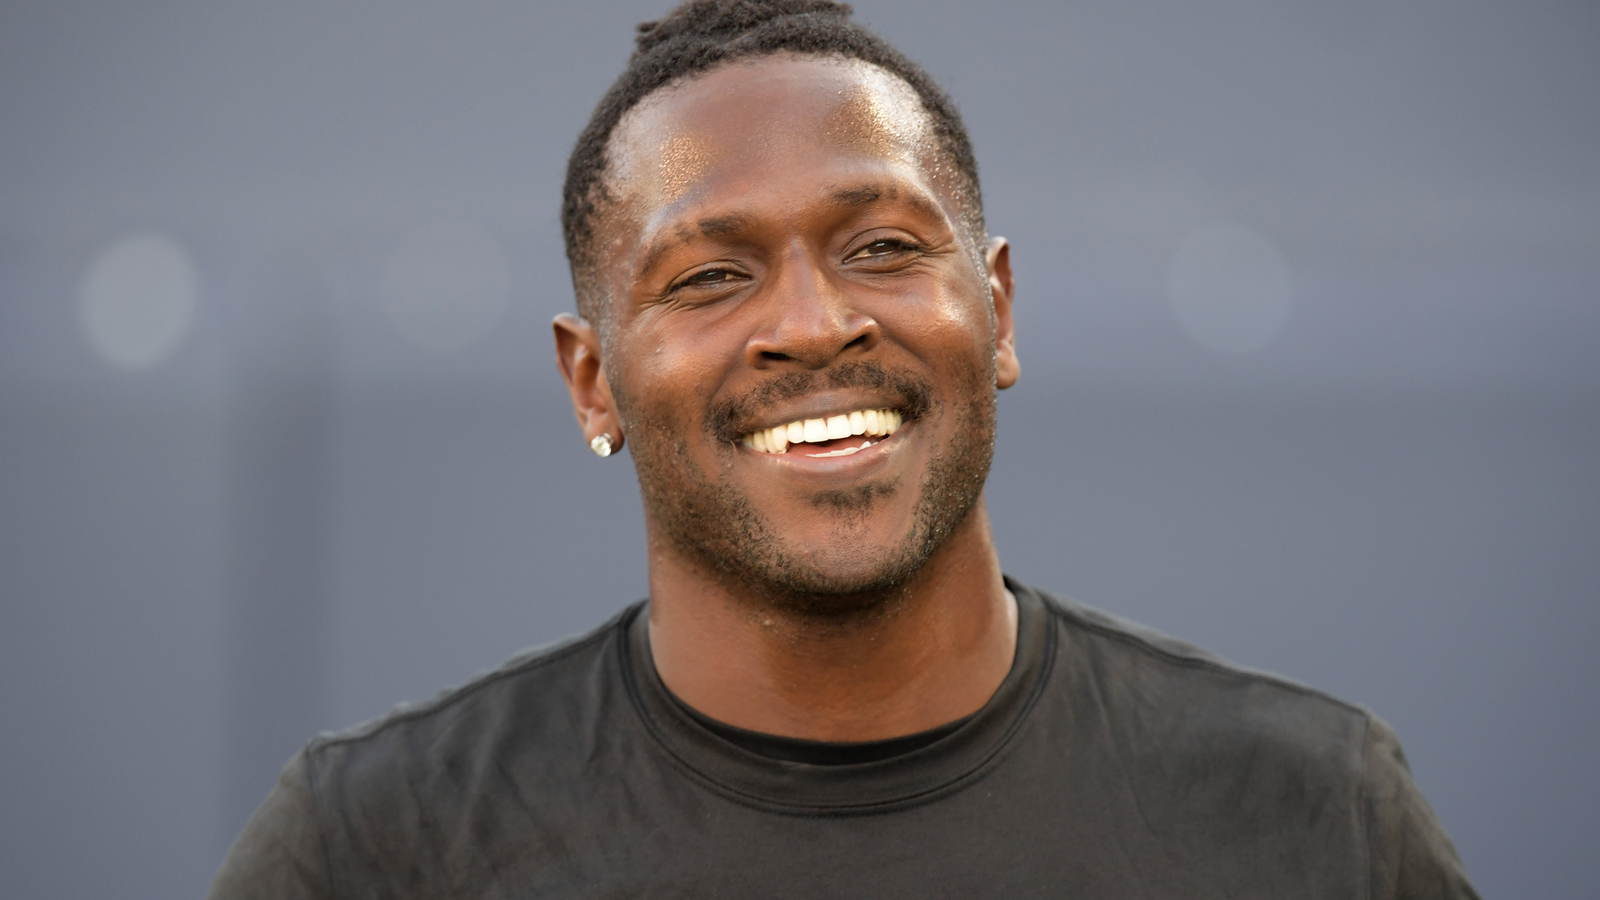 Antonio Brown hints he would welcome return to the Raiders